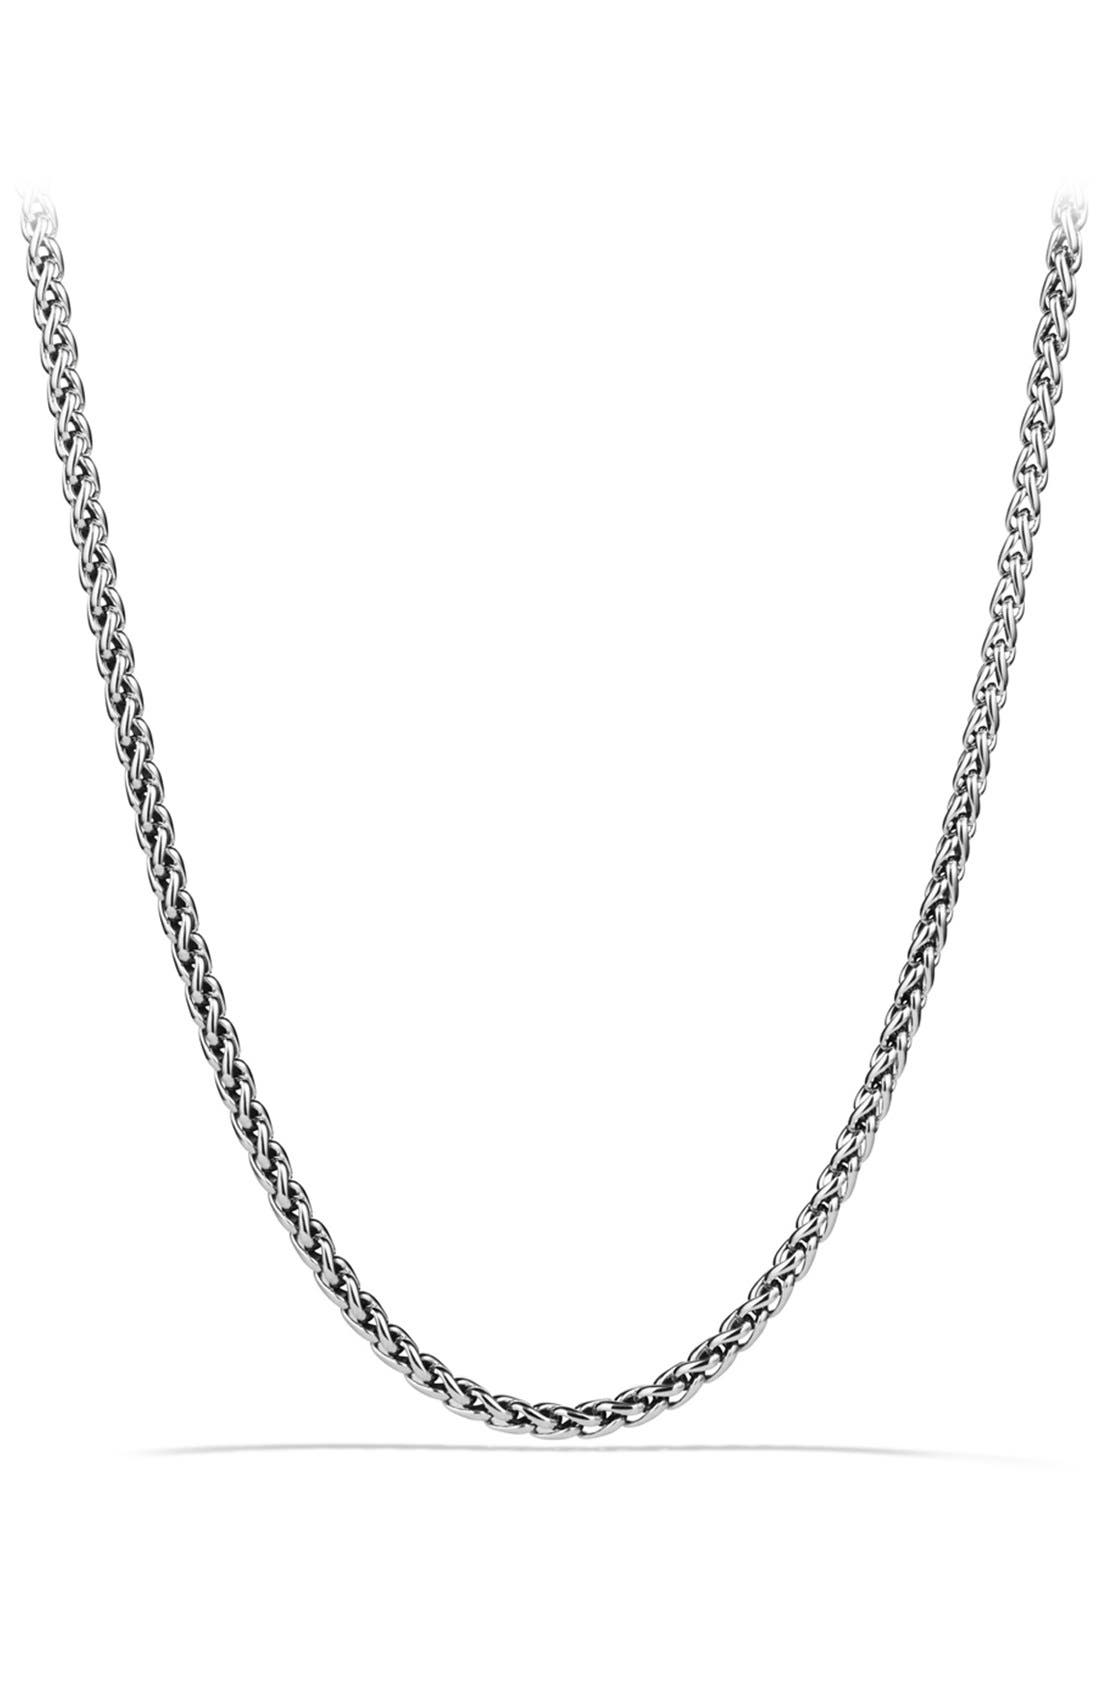 'Chain' Wheat Link Necklace,                             Main thumbnail 1, color,                             SILVER